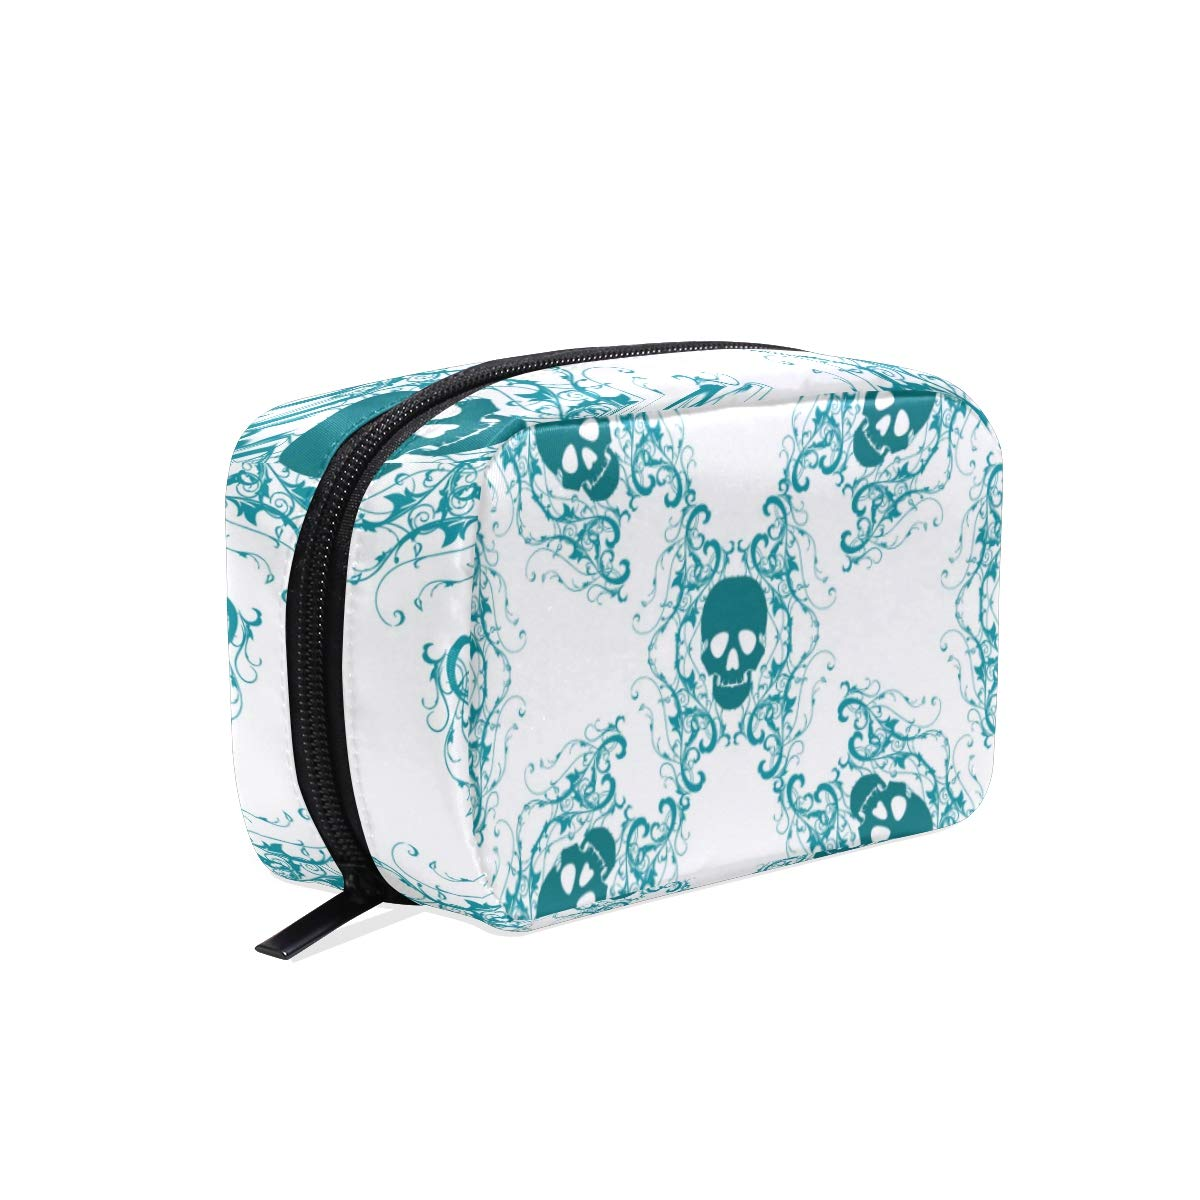 Womens Makeup Cosmetic Bag Sugar Skull Makeup Pouch for Travel Cosmetic Pouch Purse(904d32)